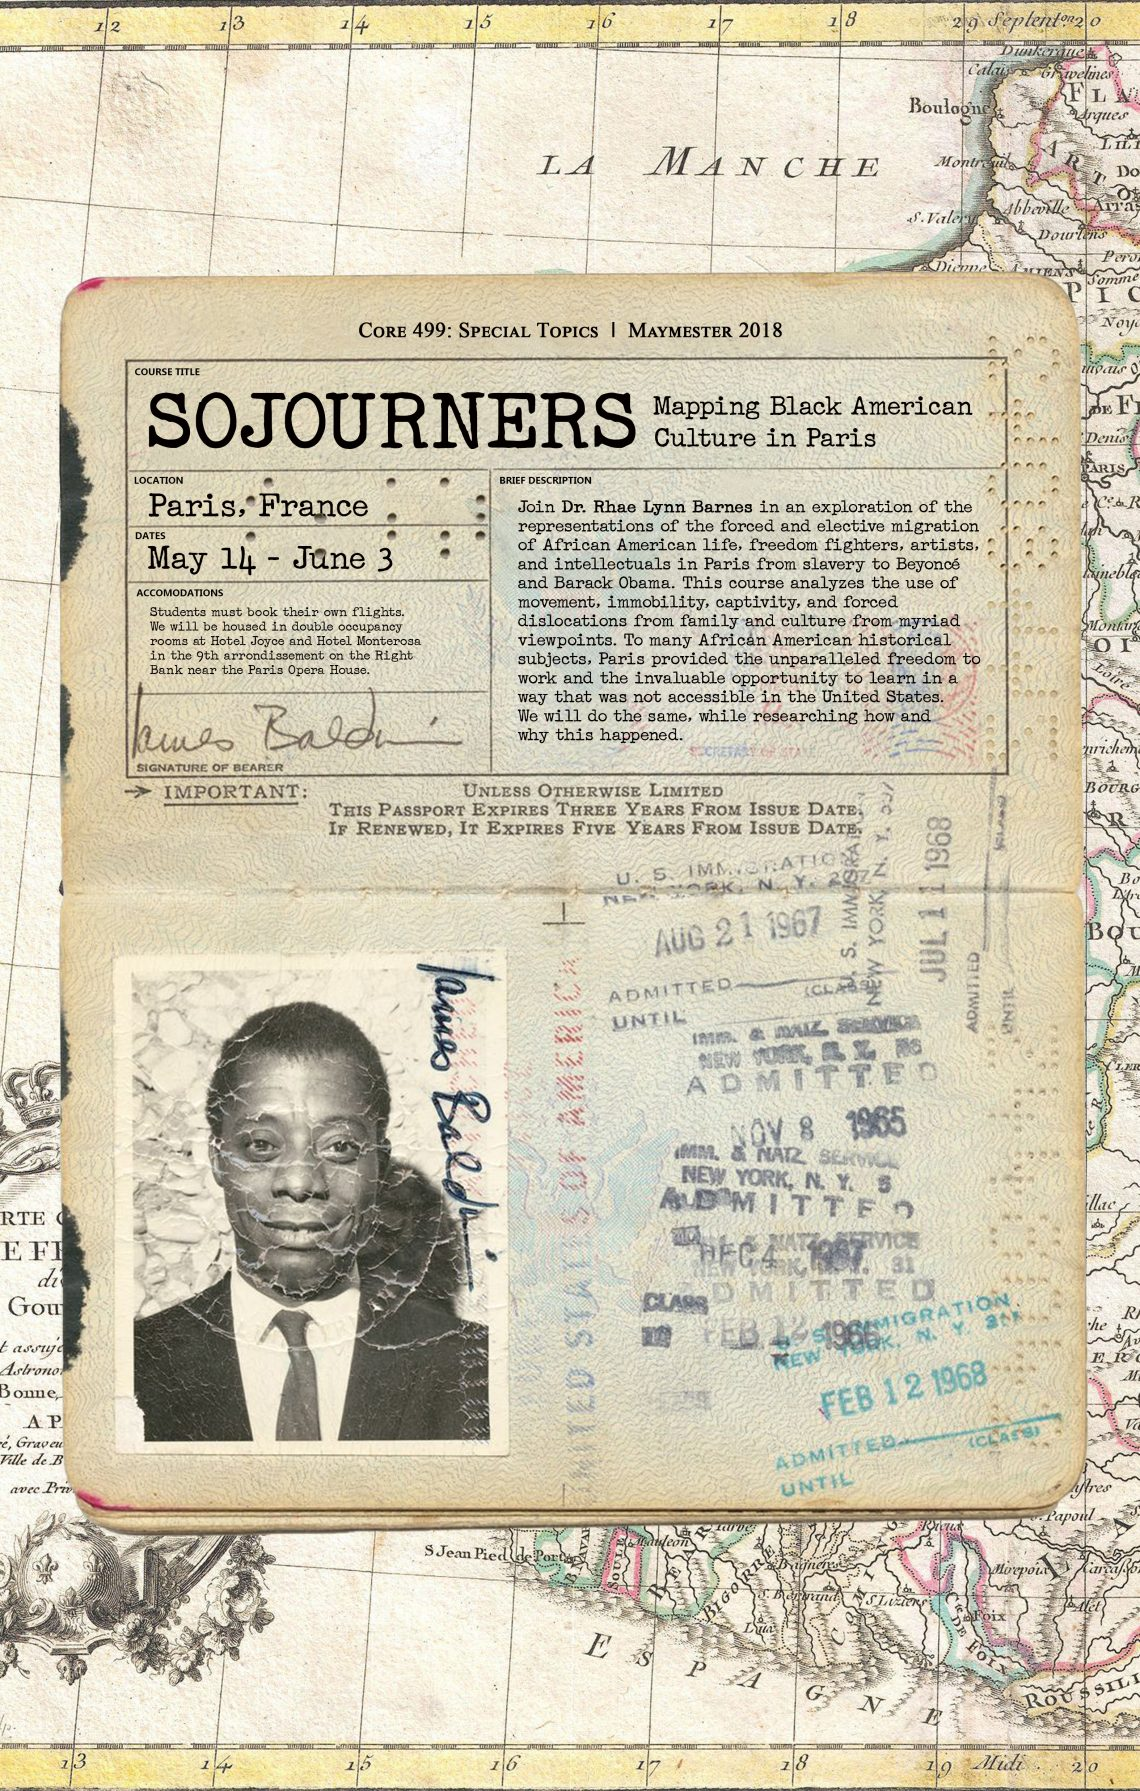 SOJOURNERS: Mapping Black American Culture in Paris